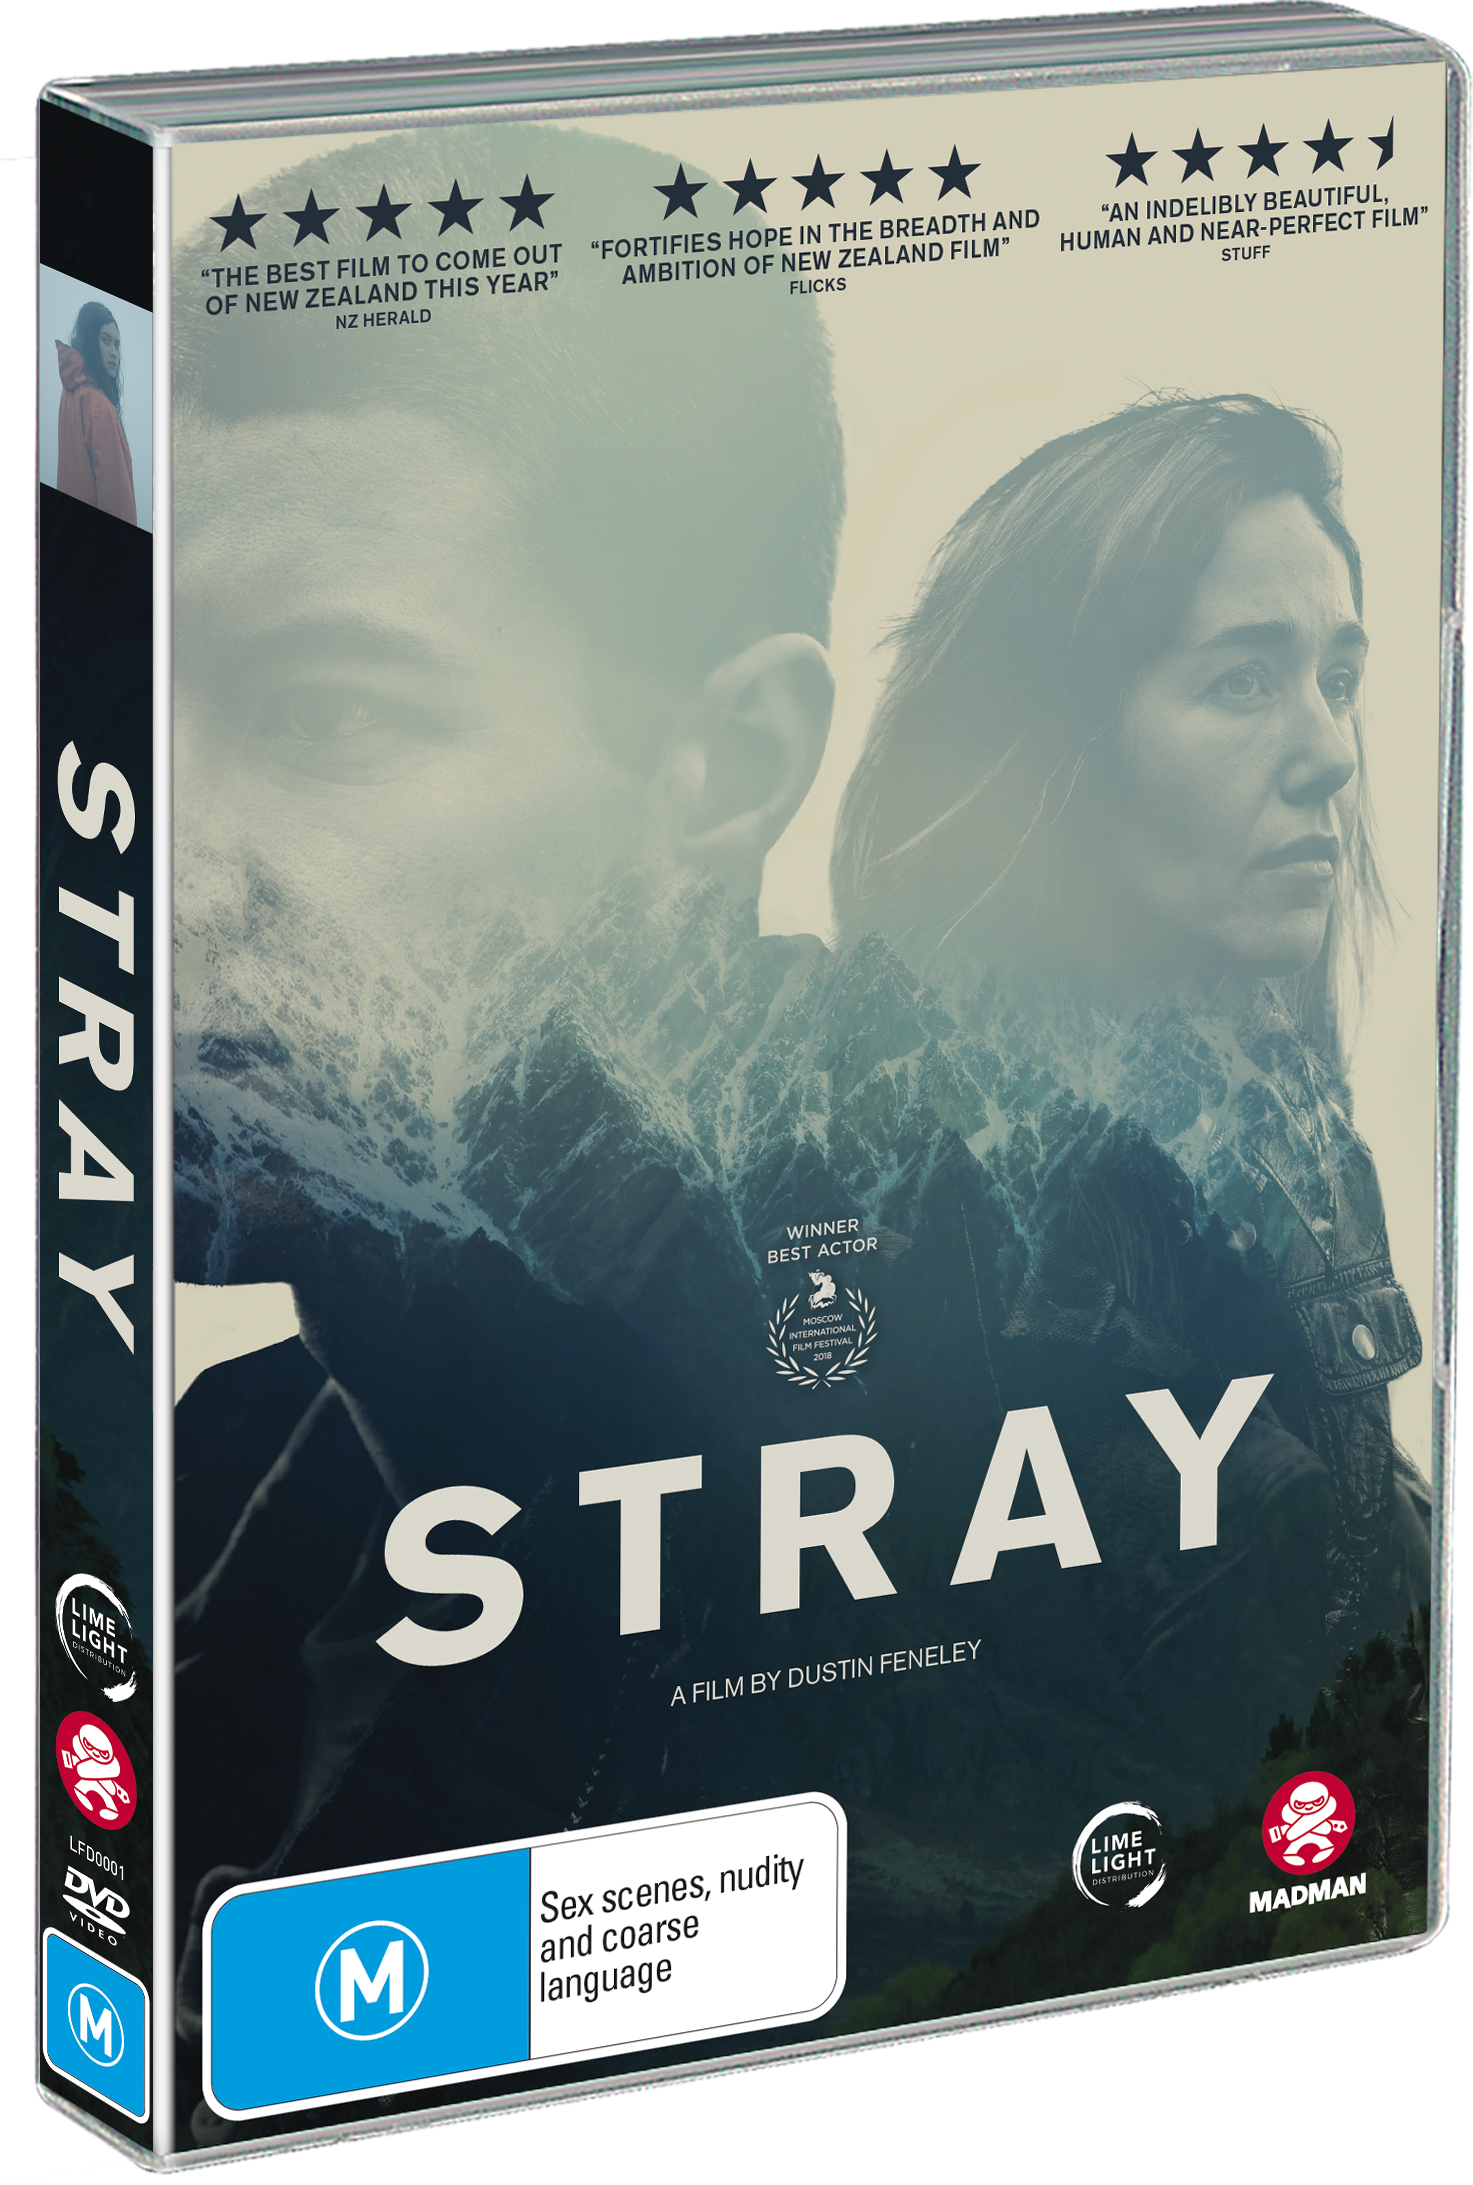 Stray_DVDslick_AU 3D packshot_highres.png